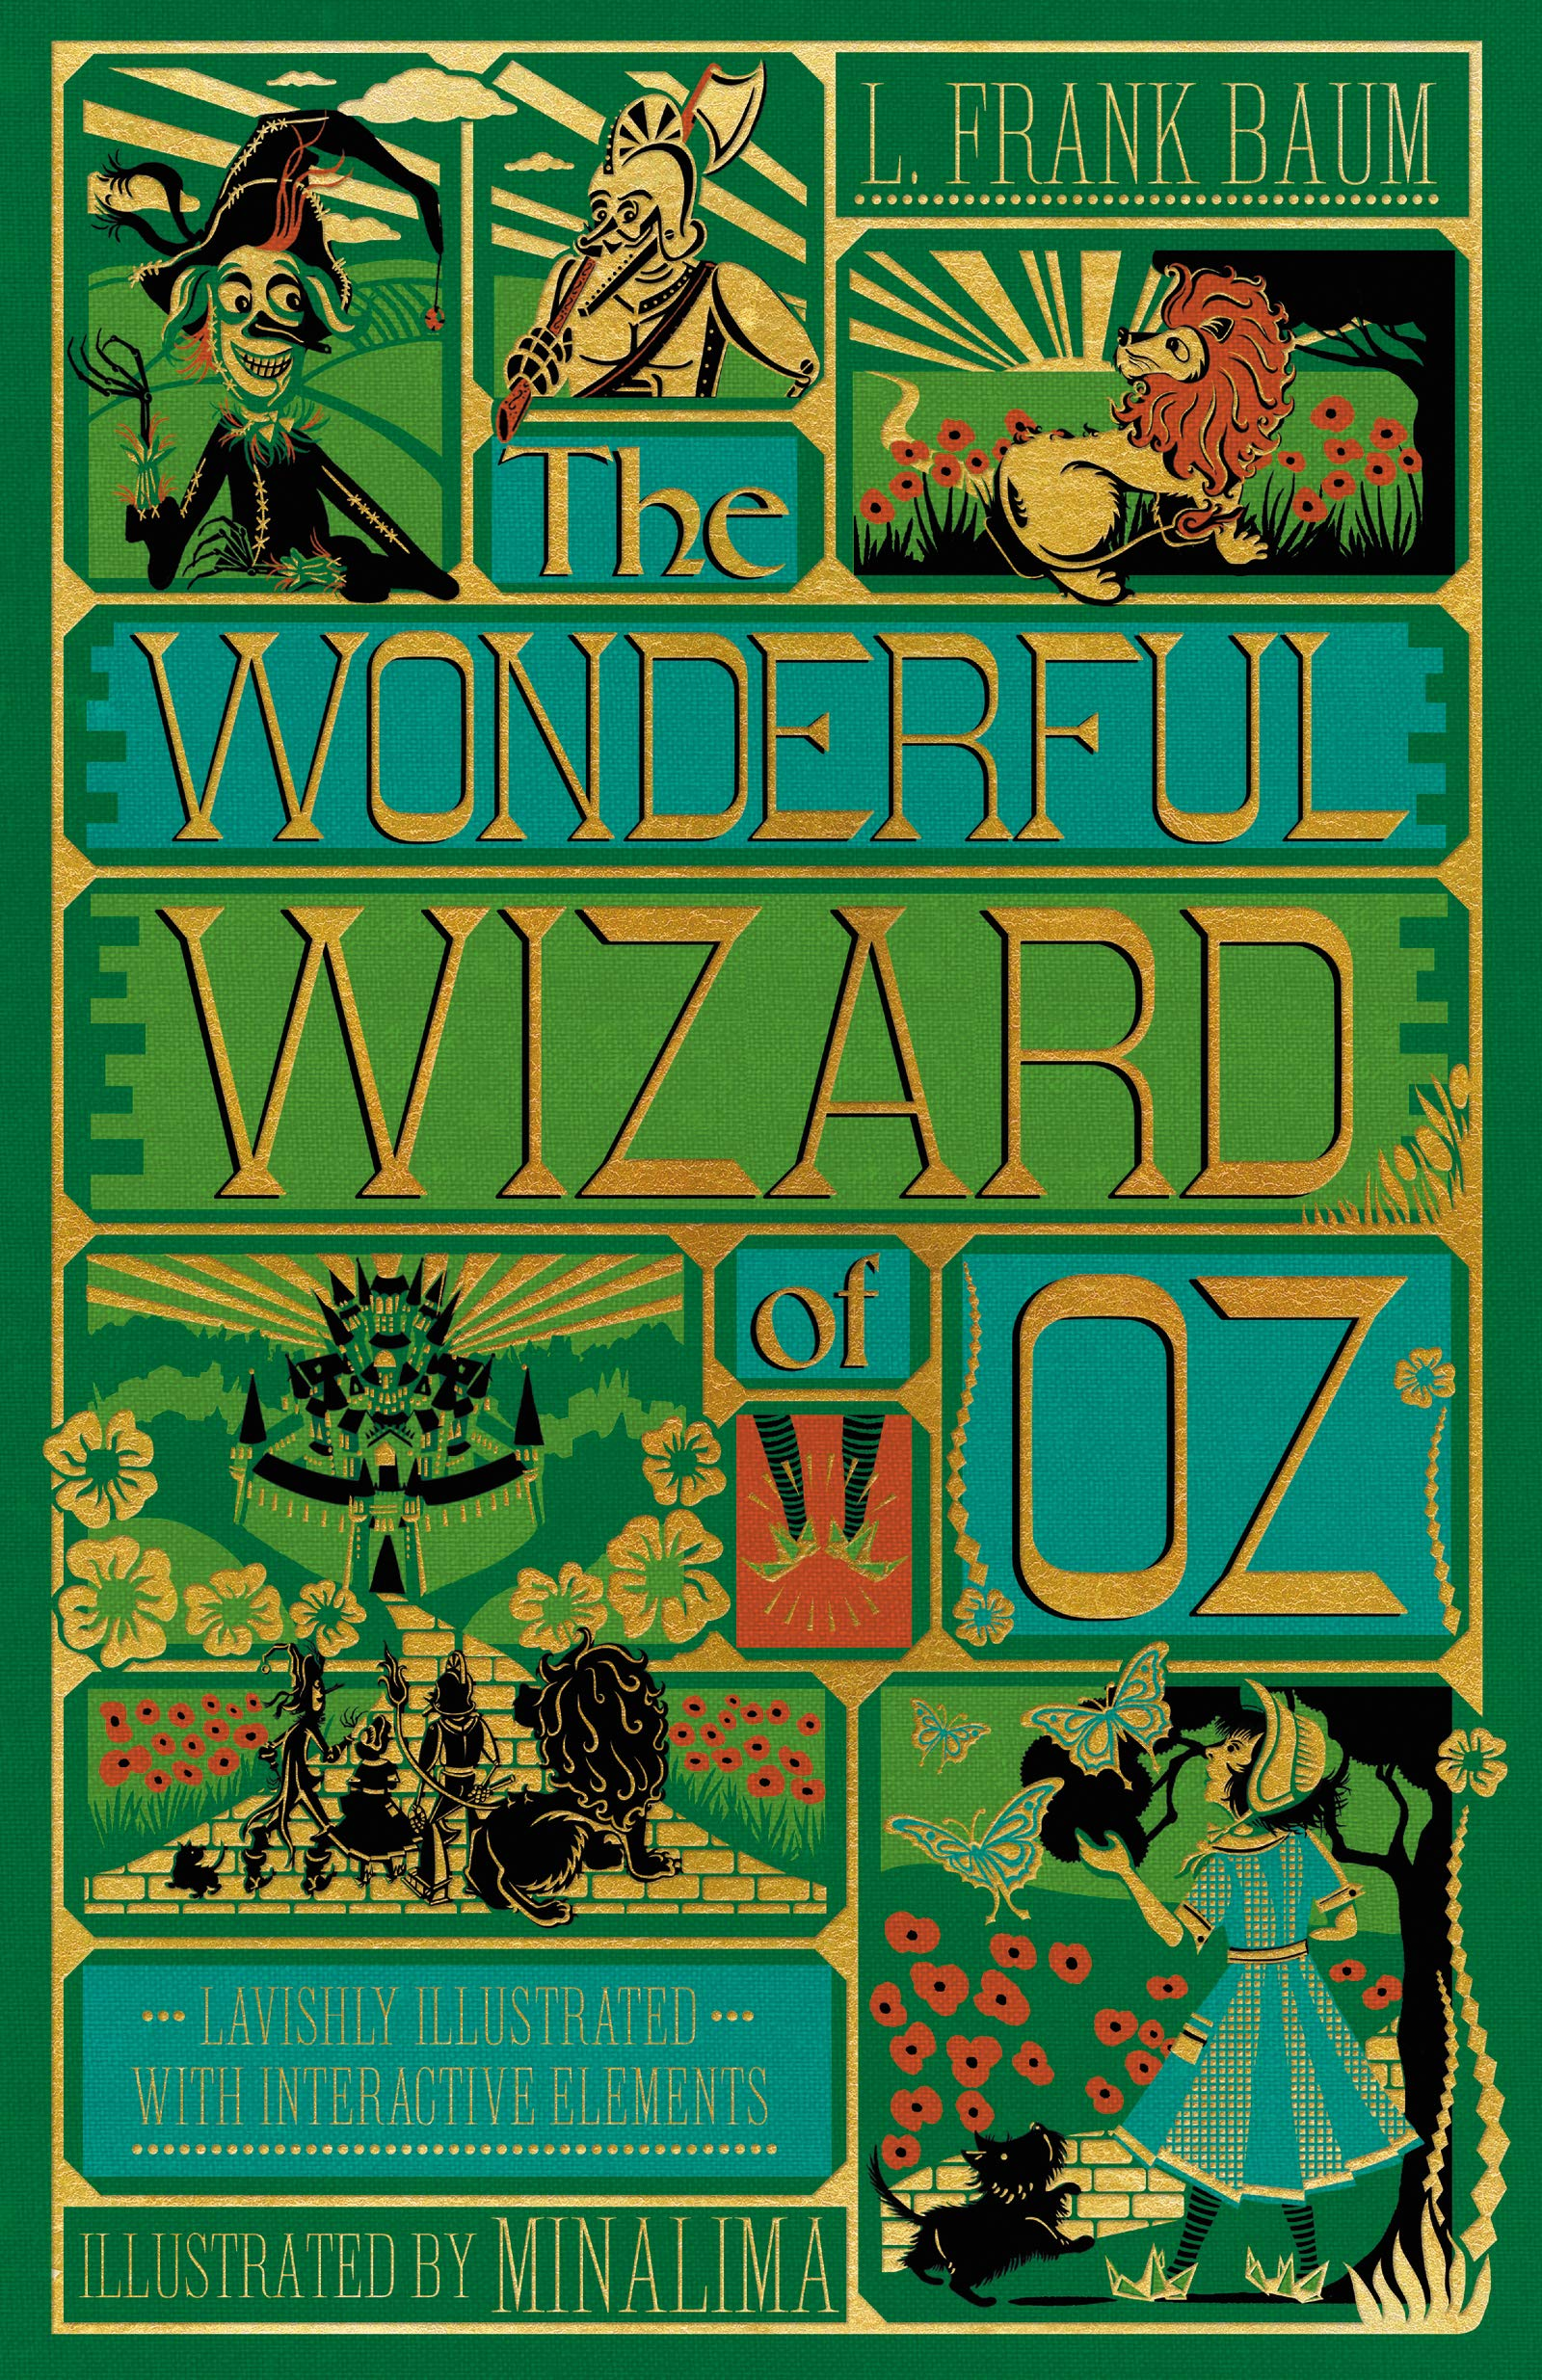 The Wonderful Wizard of Oz Interactive [Illustrated with Interactive Elements]: MinaLima Edition